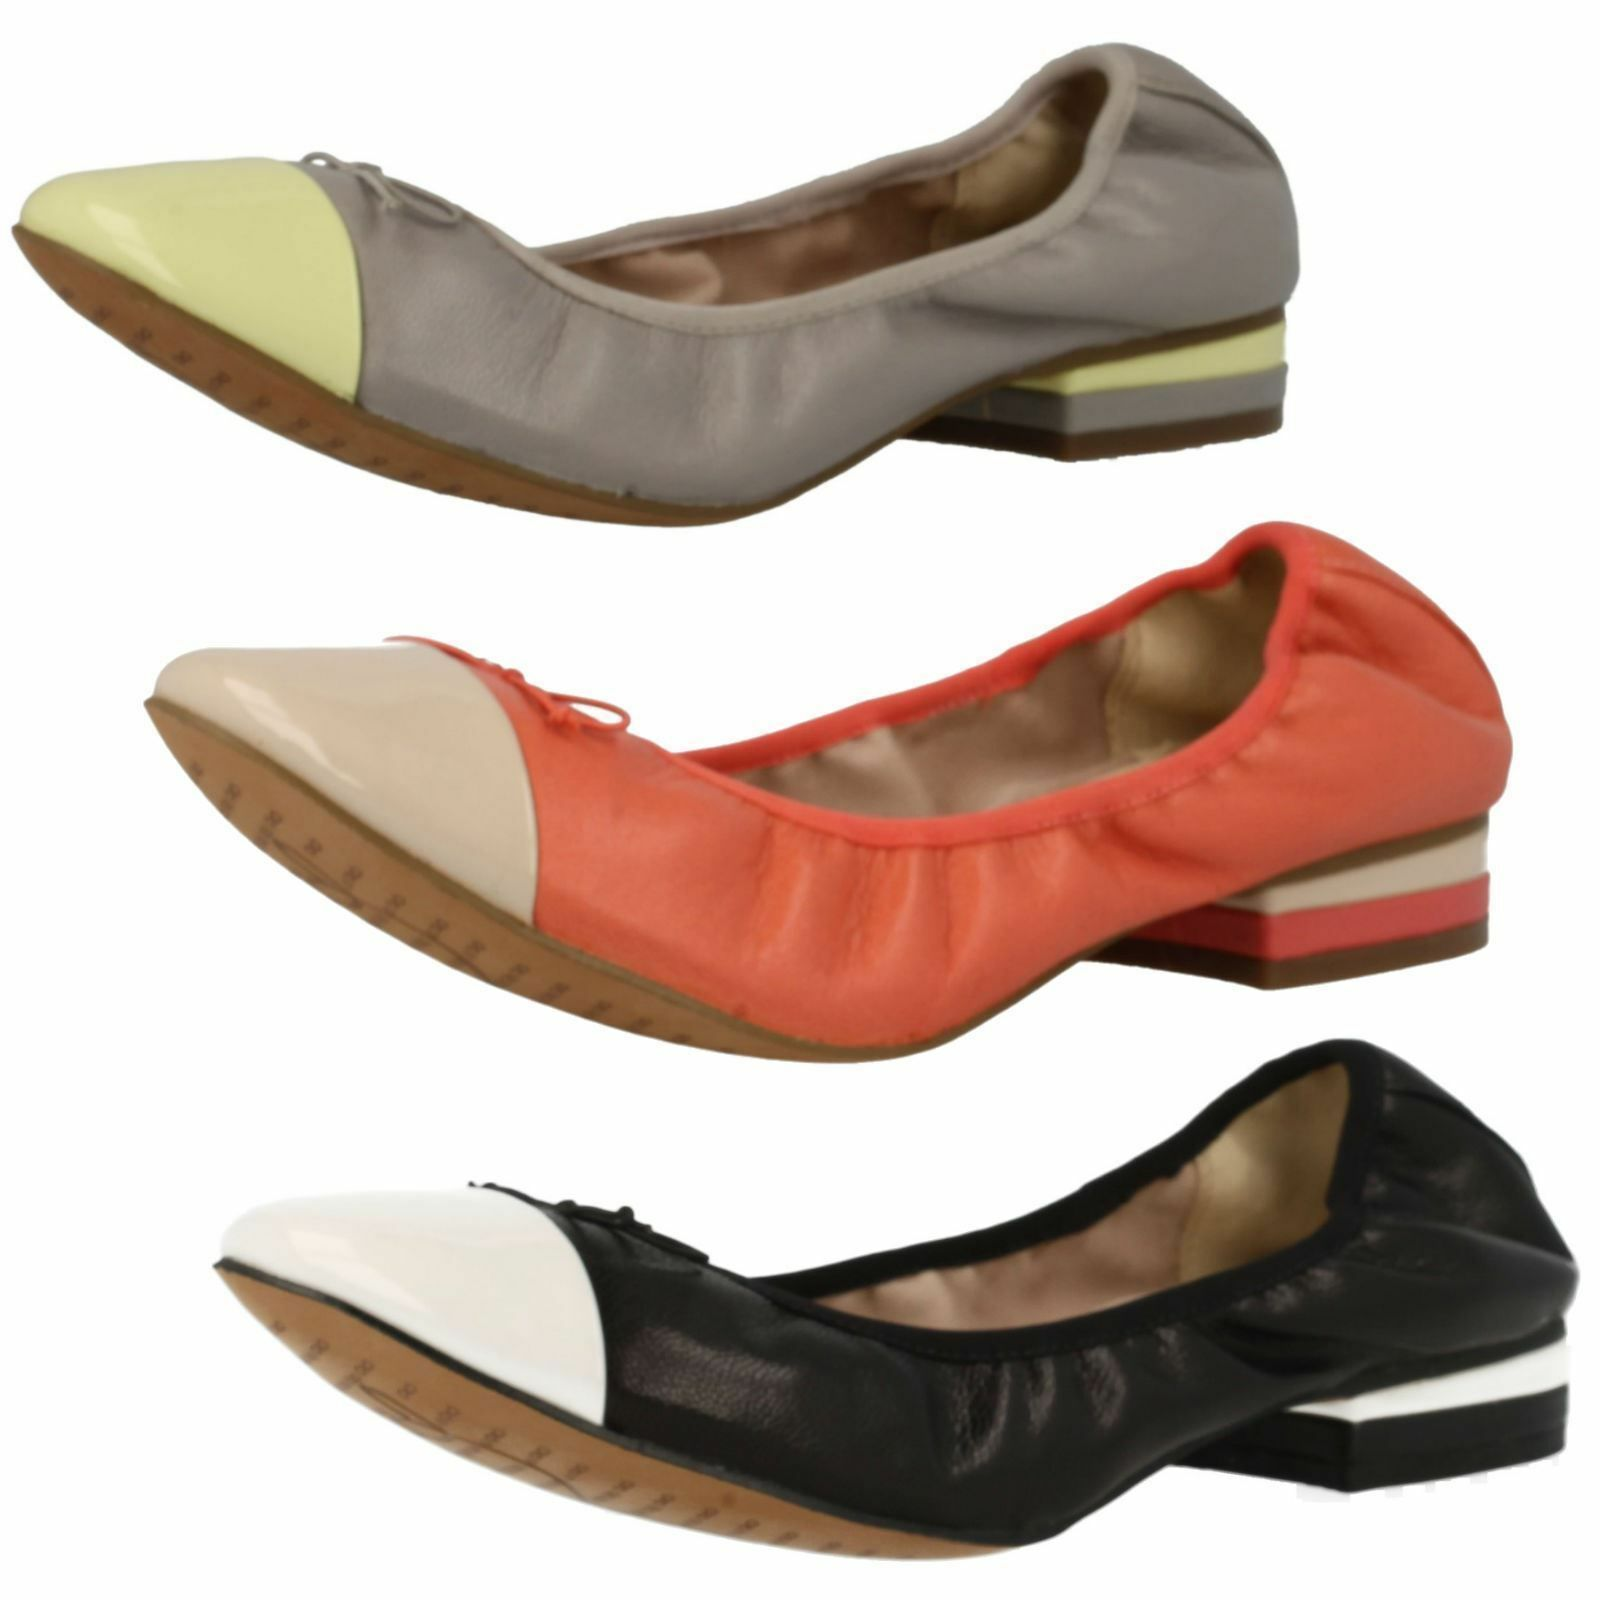 CLARKS flat Ditsy Dress slip on flat CLARKS summer casual shoes 615d83